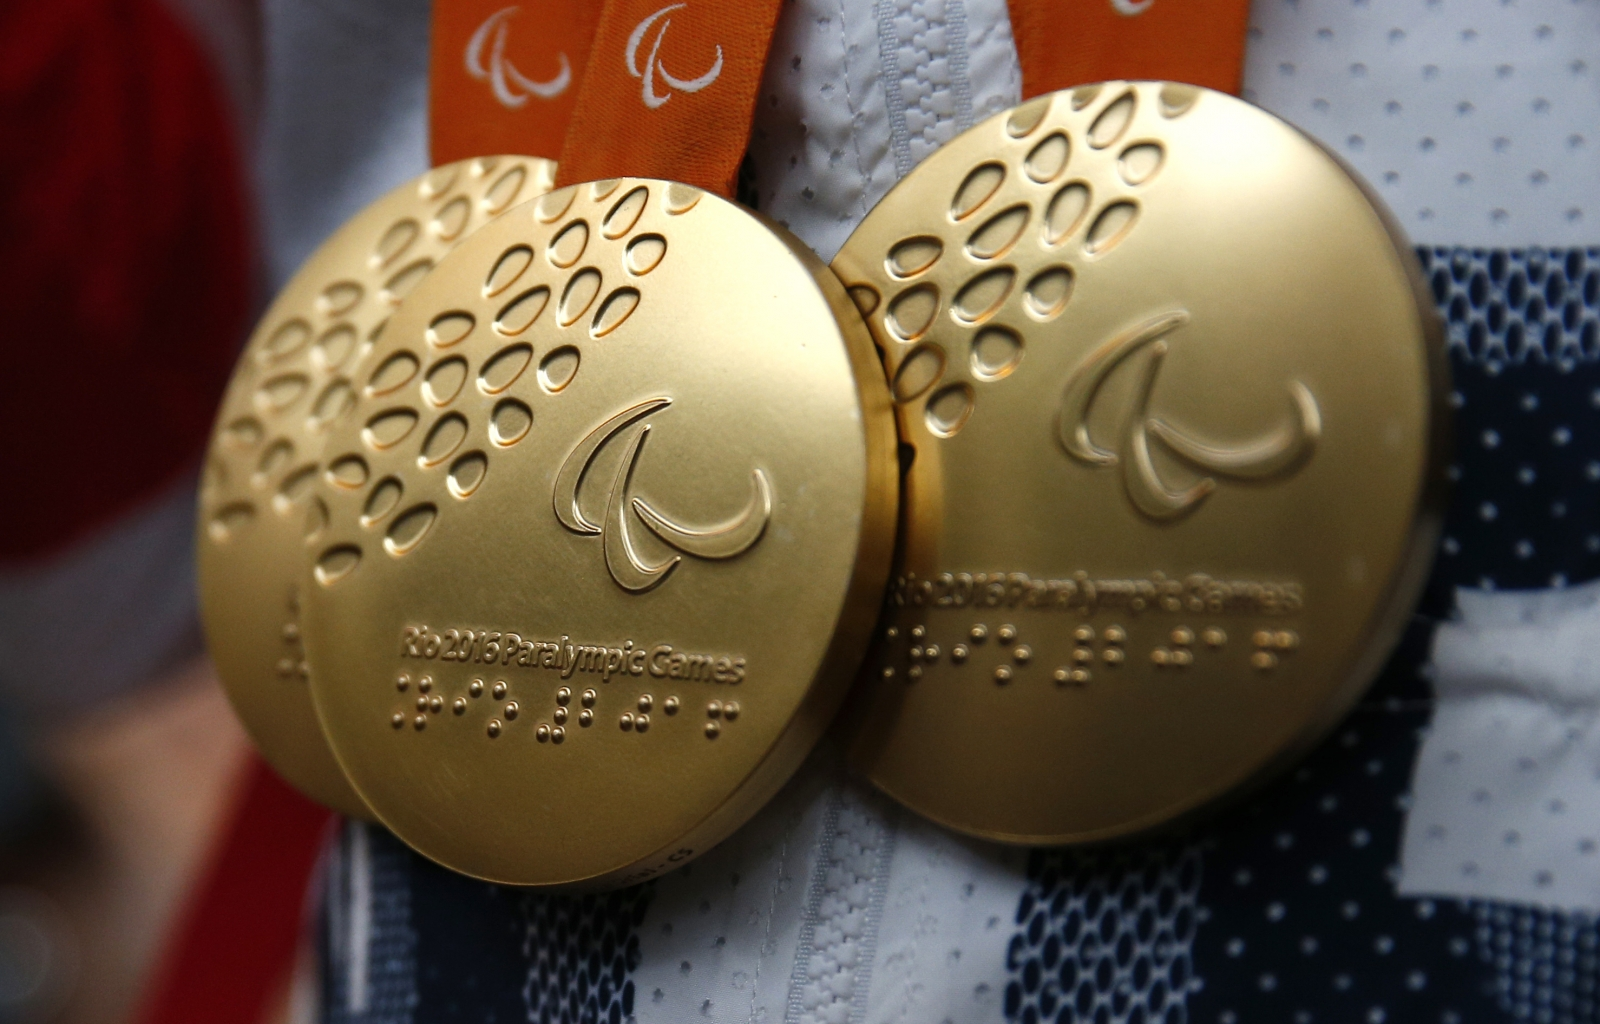 Paralympic gold medals